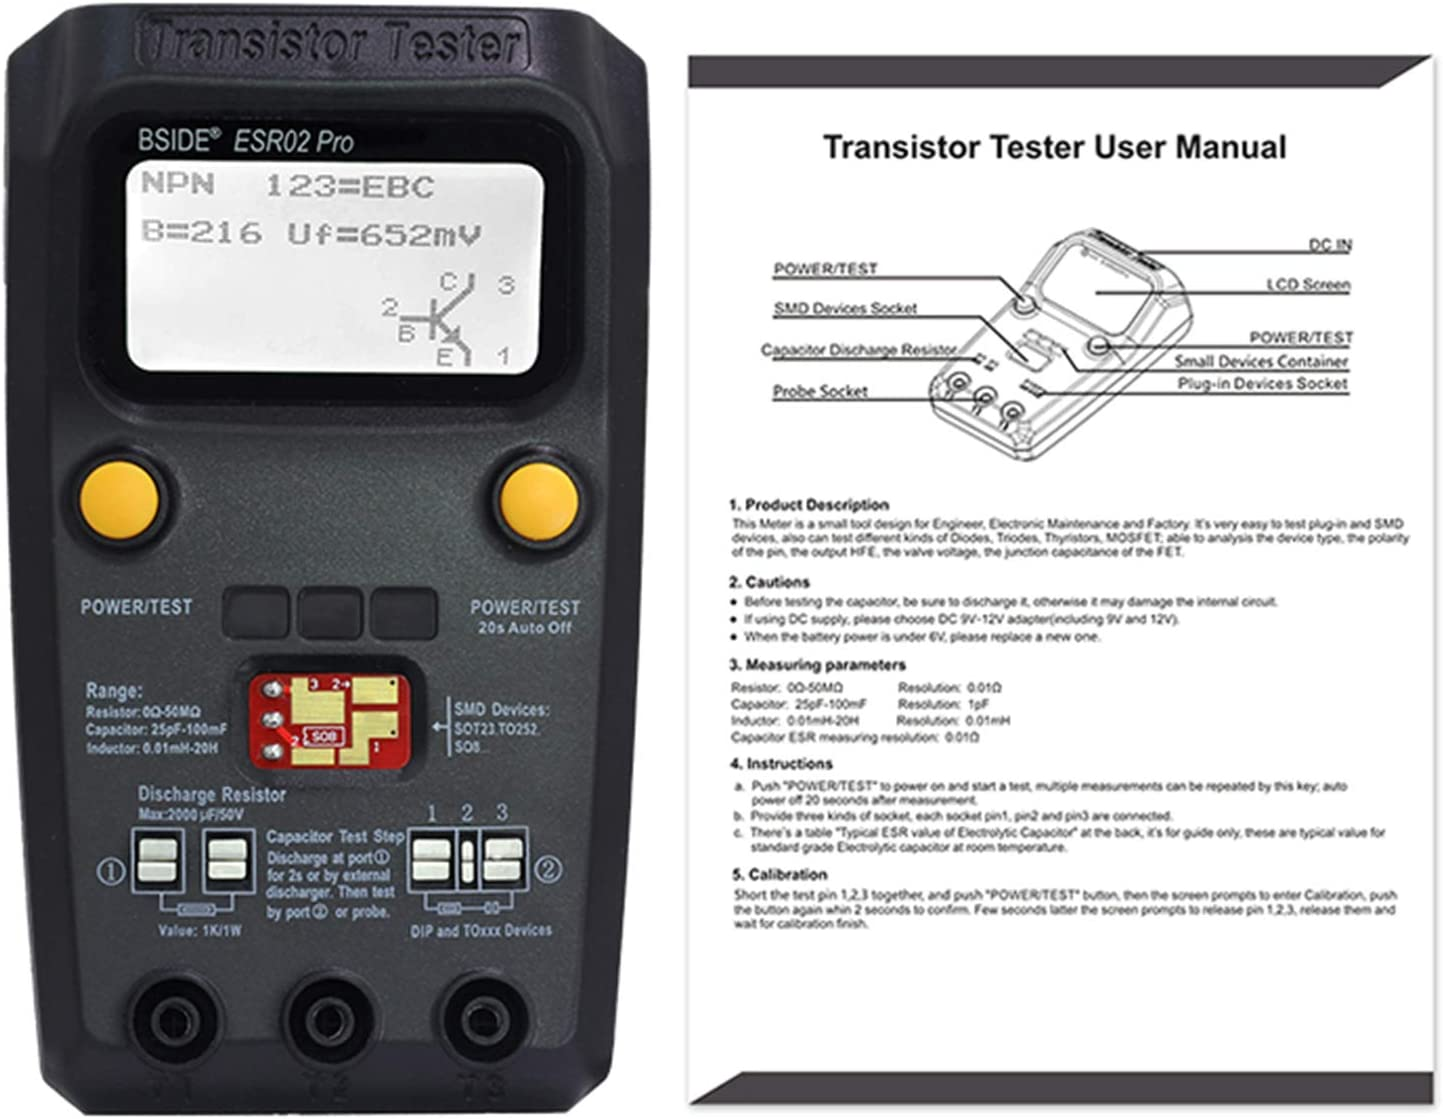 LCR-TC1 TFT Screen Display Multi-functional TFT Backlight Transistor Tester  TY